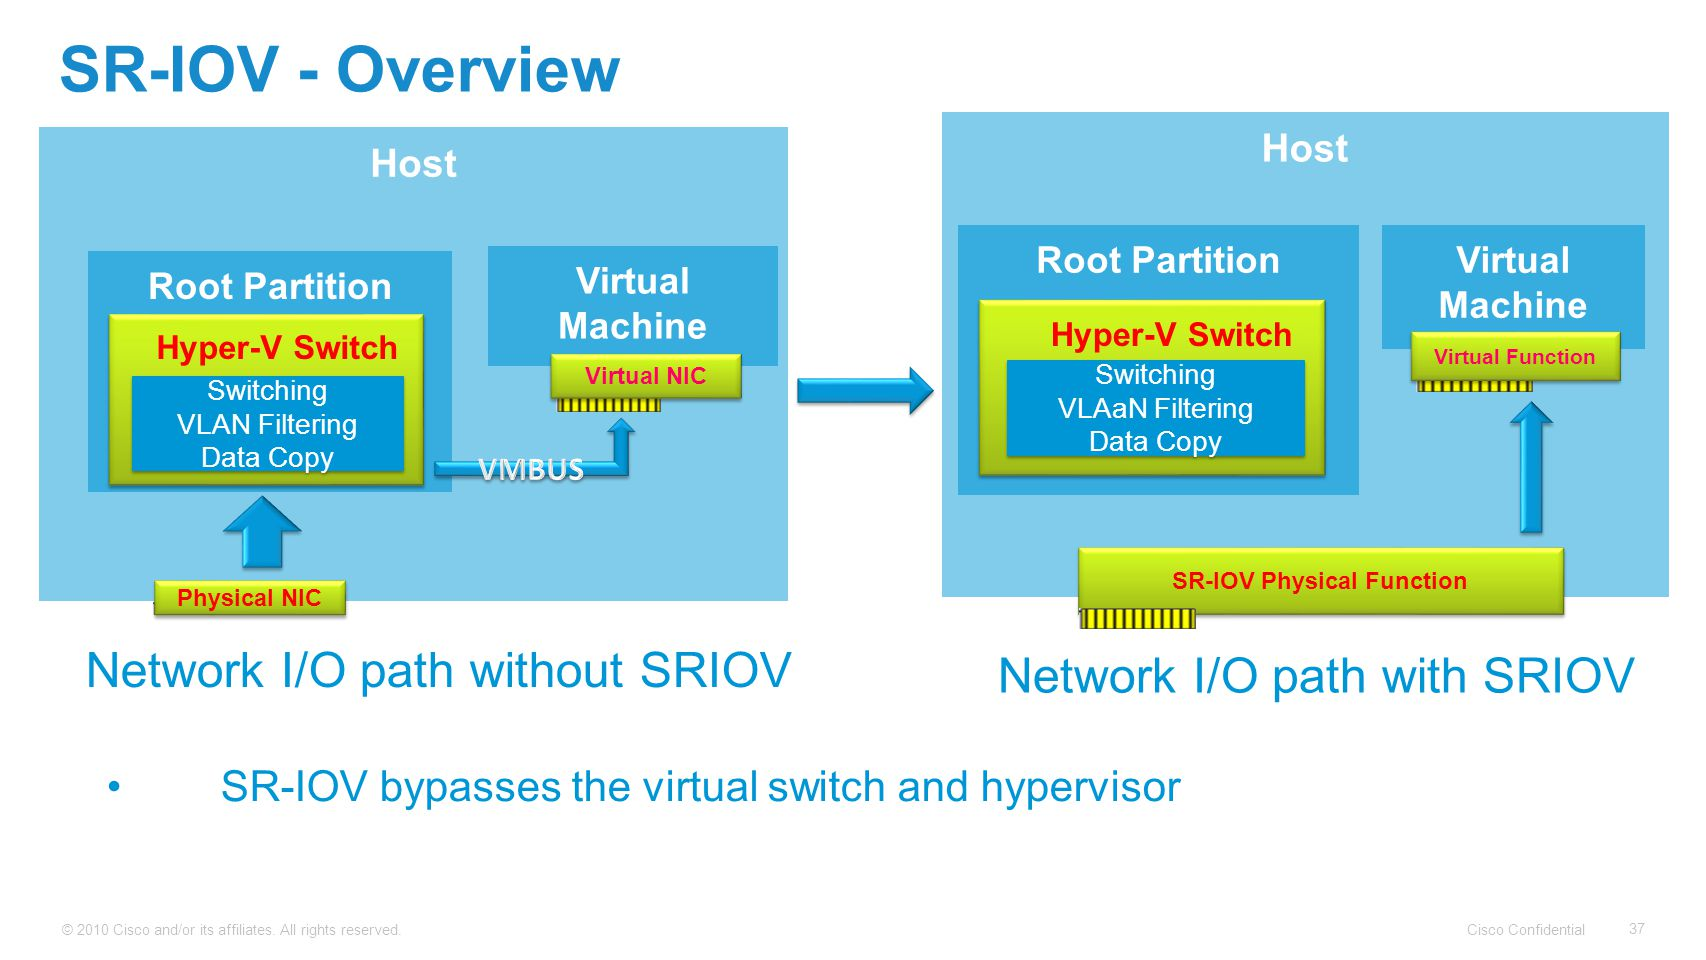 Cisco Confidential © 2010 Cisco and/or its affiliates. All rights reserved. 37 Host SR-IOV - Overview SR-IOV bypasses the virtual switch and hyperviso